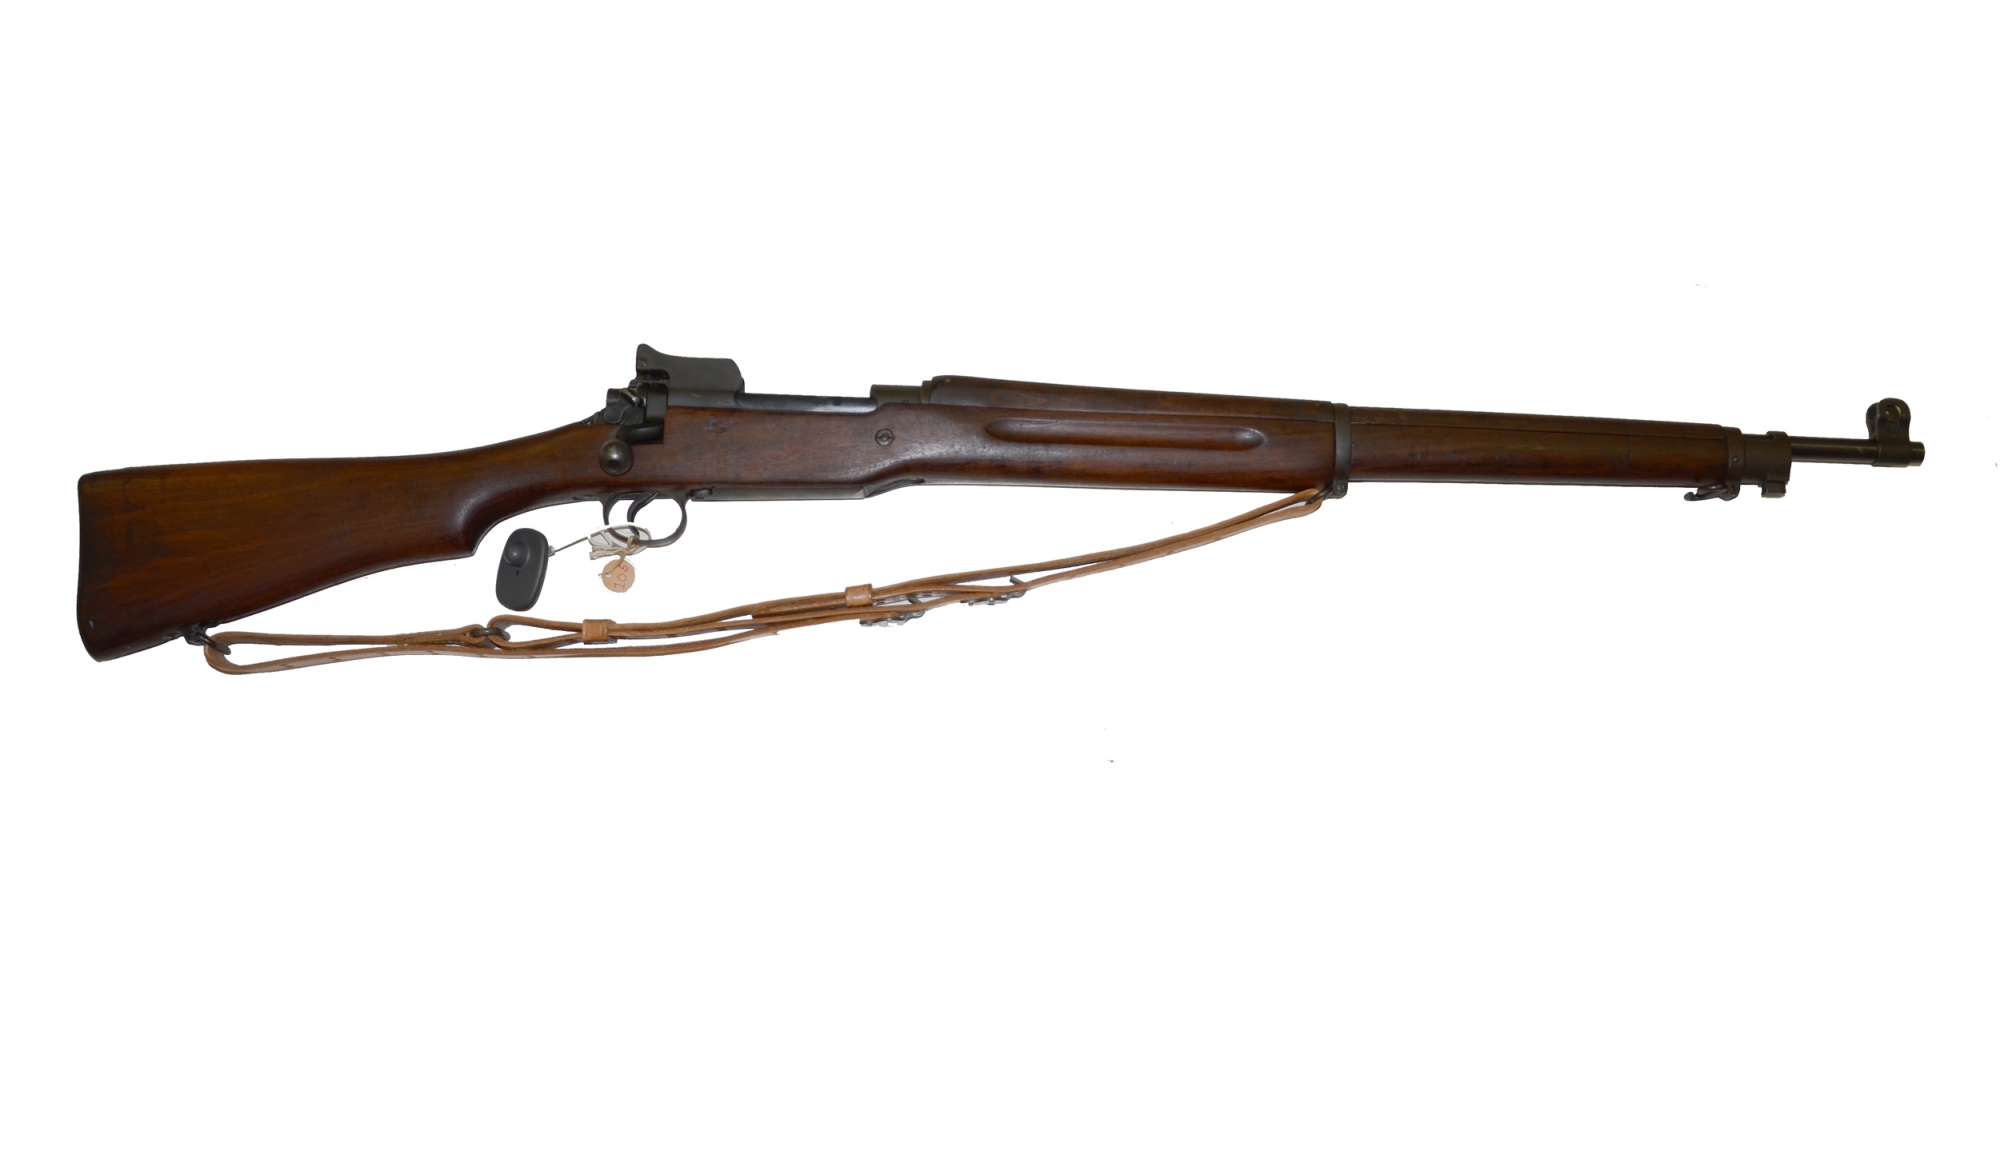 MODEL 1917 RIFLE MADE BY EDDYSTONE